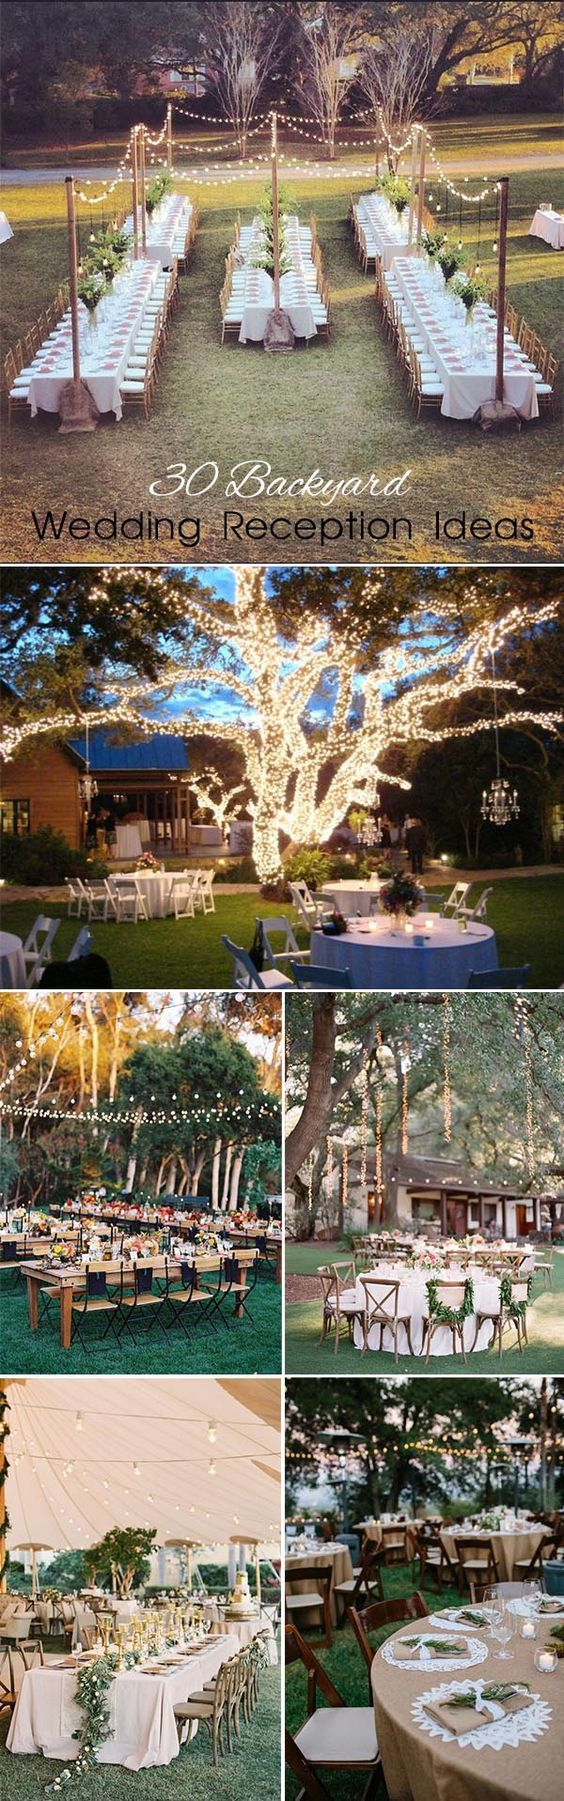 Backyard weddings are getting more and more popular because they are informal, simple,cozy, relaxing, and won't require a big budget .The best part of having backyard wedding is that you can personalize it without any restrictions,cover the trees with lights and garlands or hang your family photos on them. SO, ready to start backyard wedding planning? Click to see 30 of our favorite backyard wedding ideas…